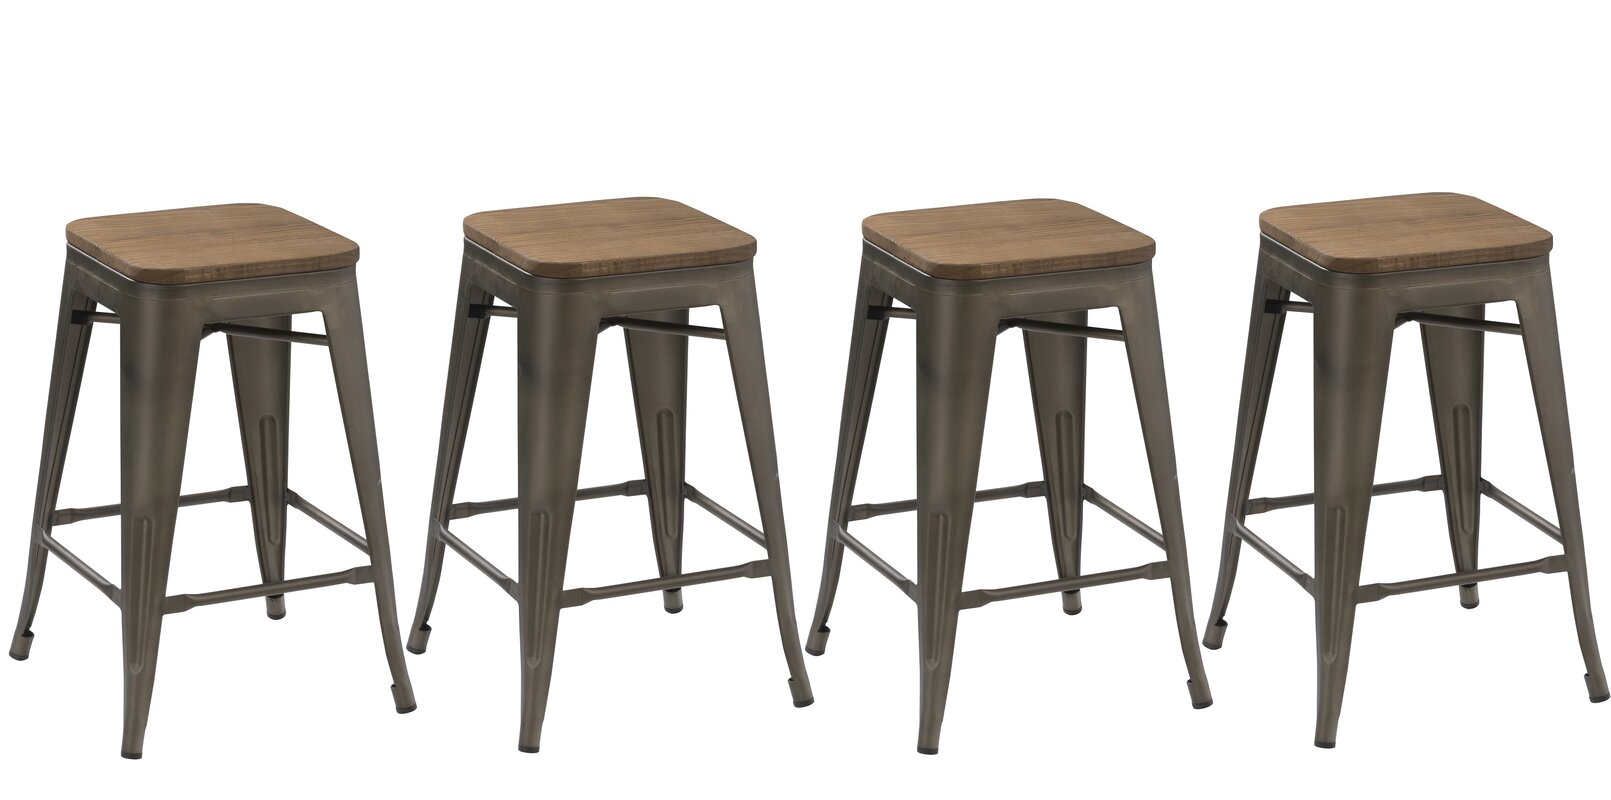 "Desiree 24"" Bar Stool"